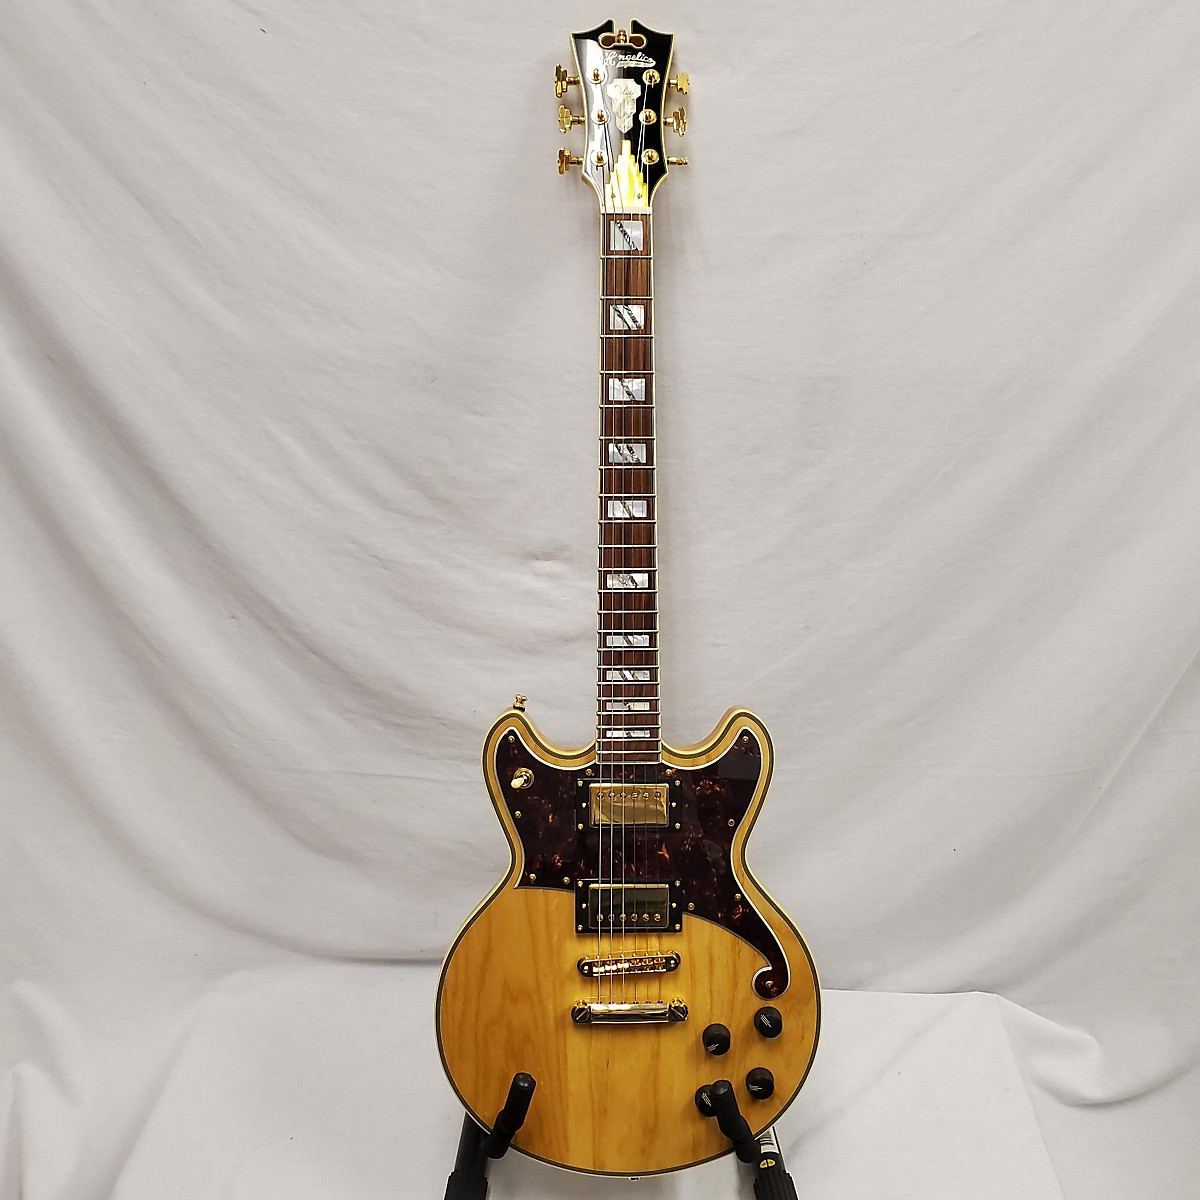 D'Angelico Deluxe Series Brighton Solid Body Electric Guitar